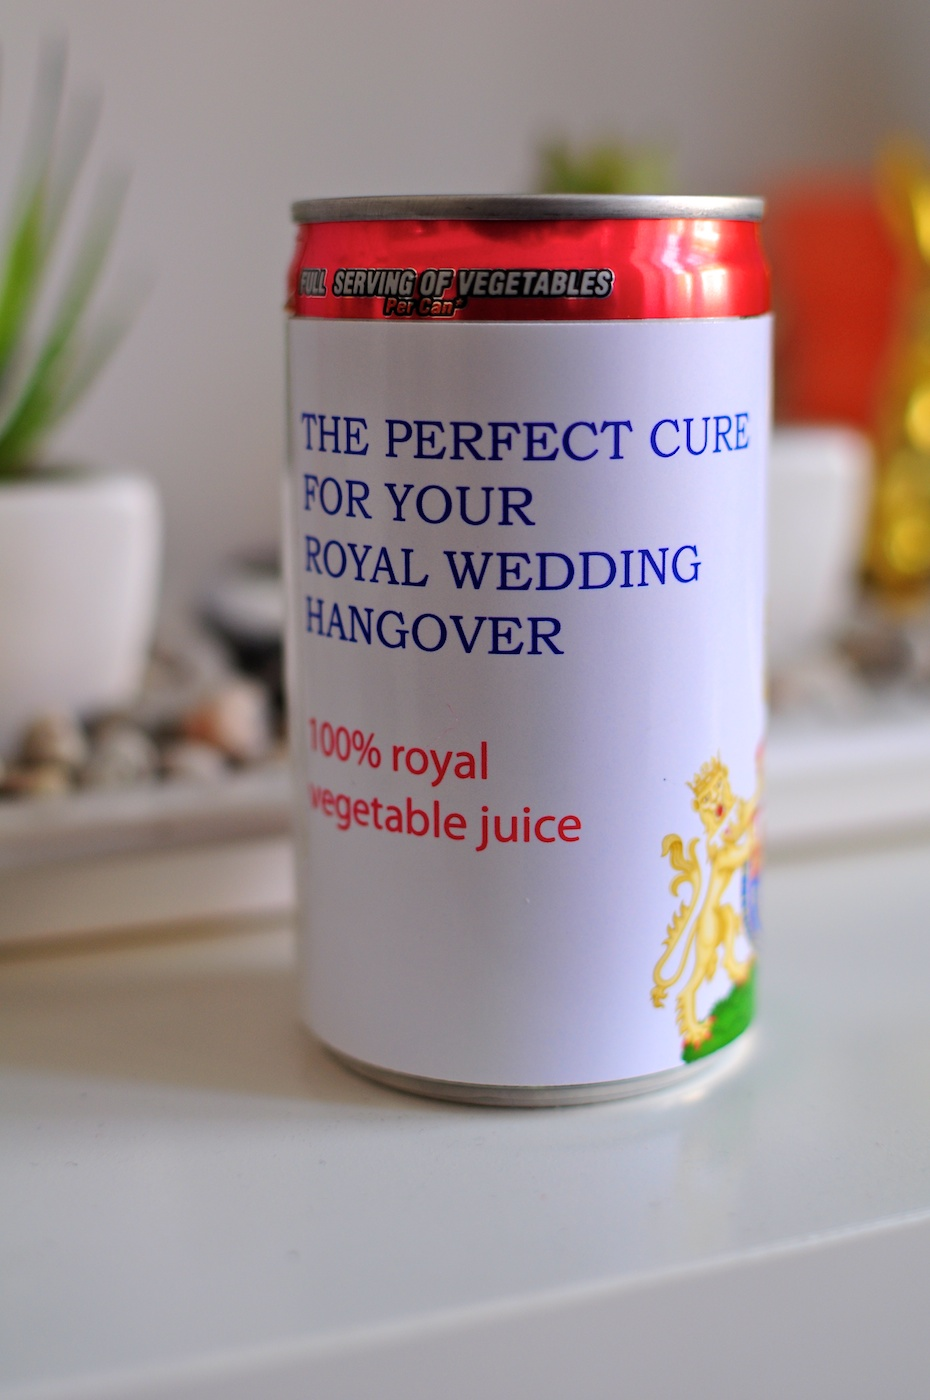 Be Creative #118 - Royal Wedding Hangover Cure, © Ines Häufler, 2011